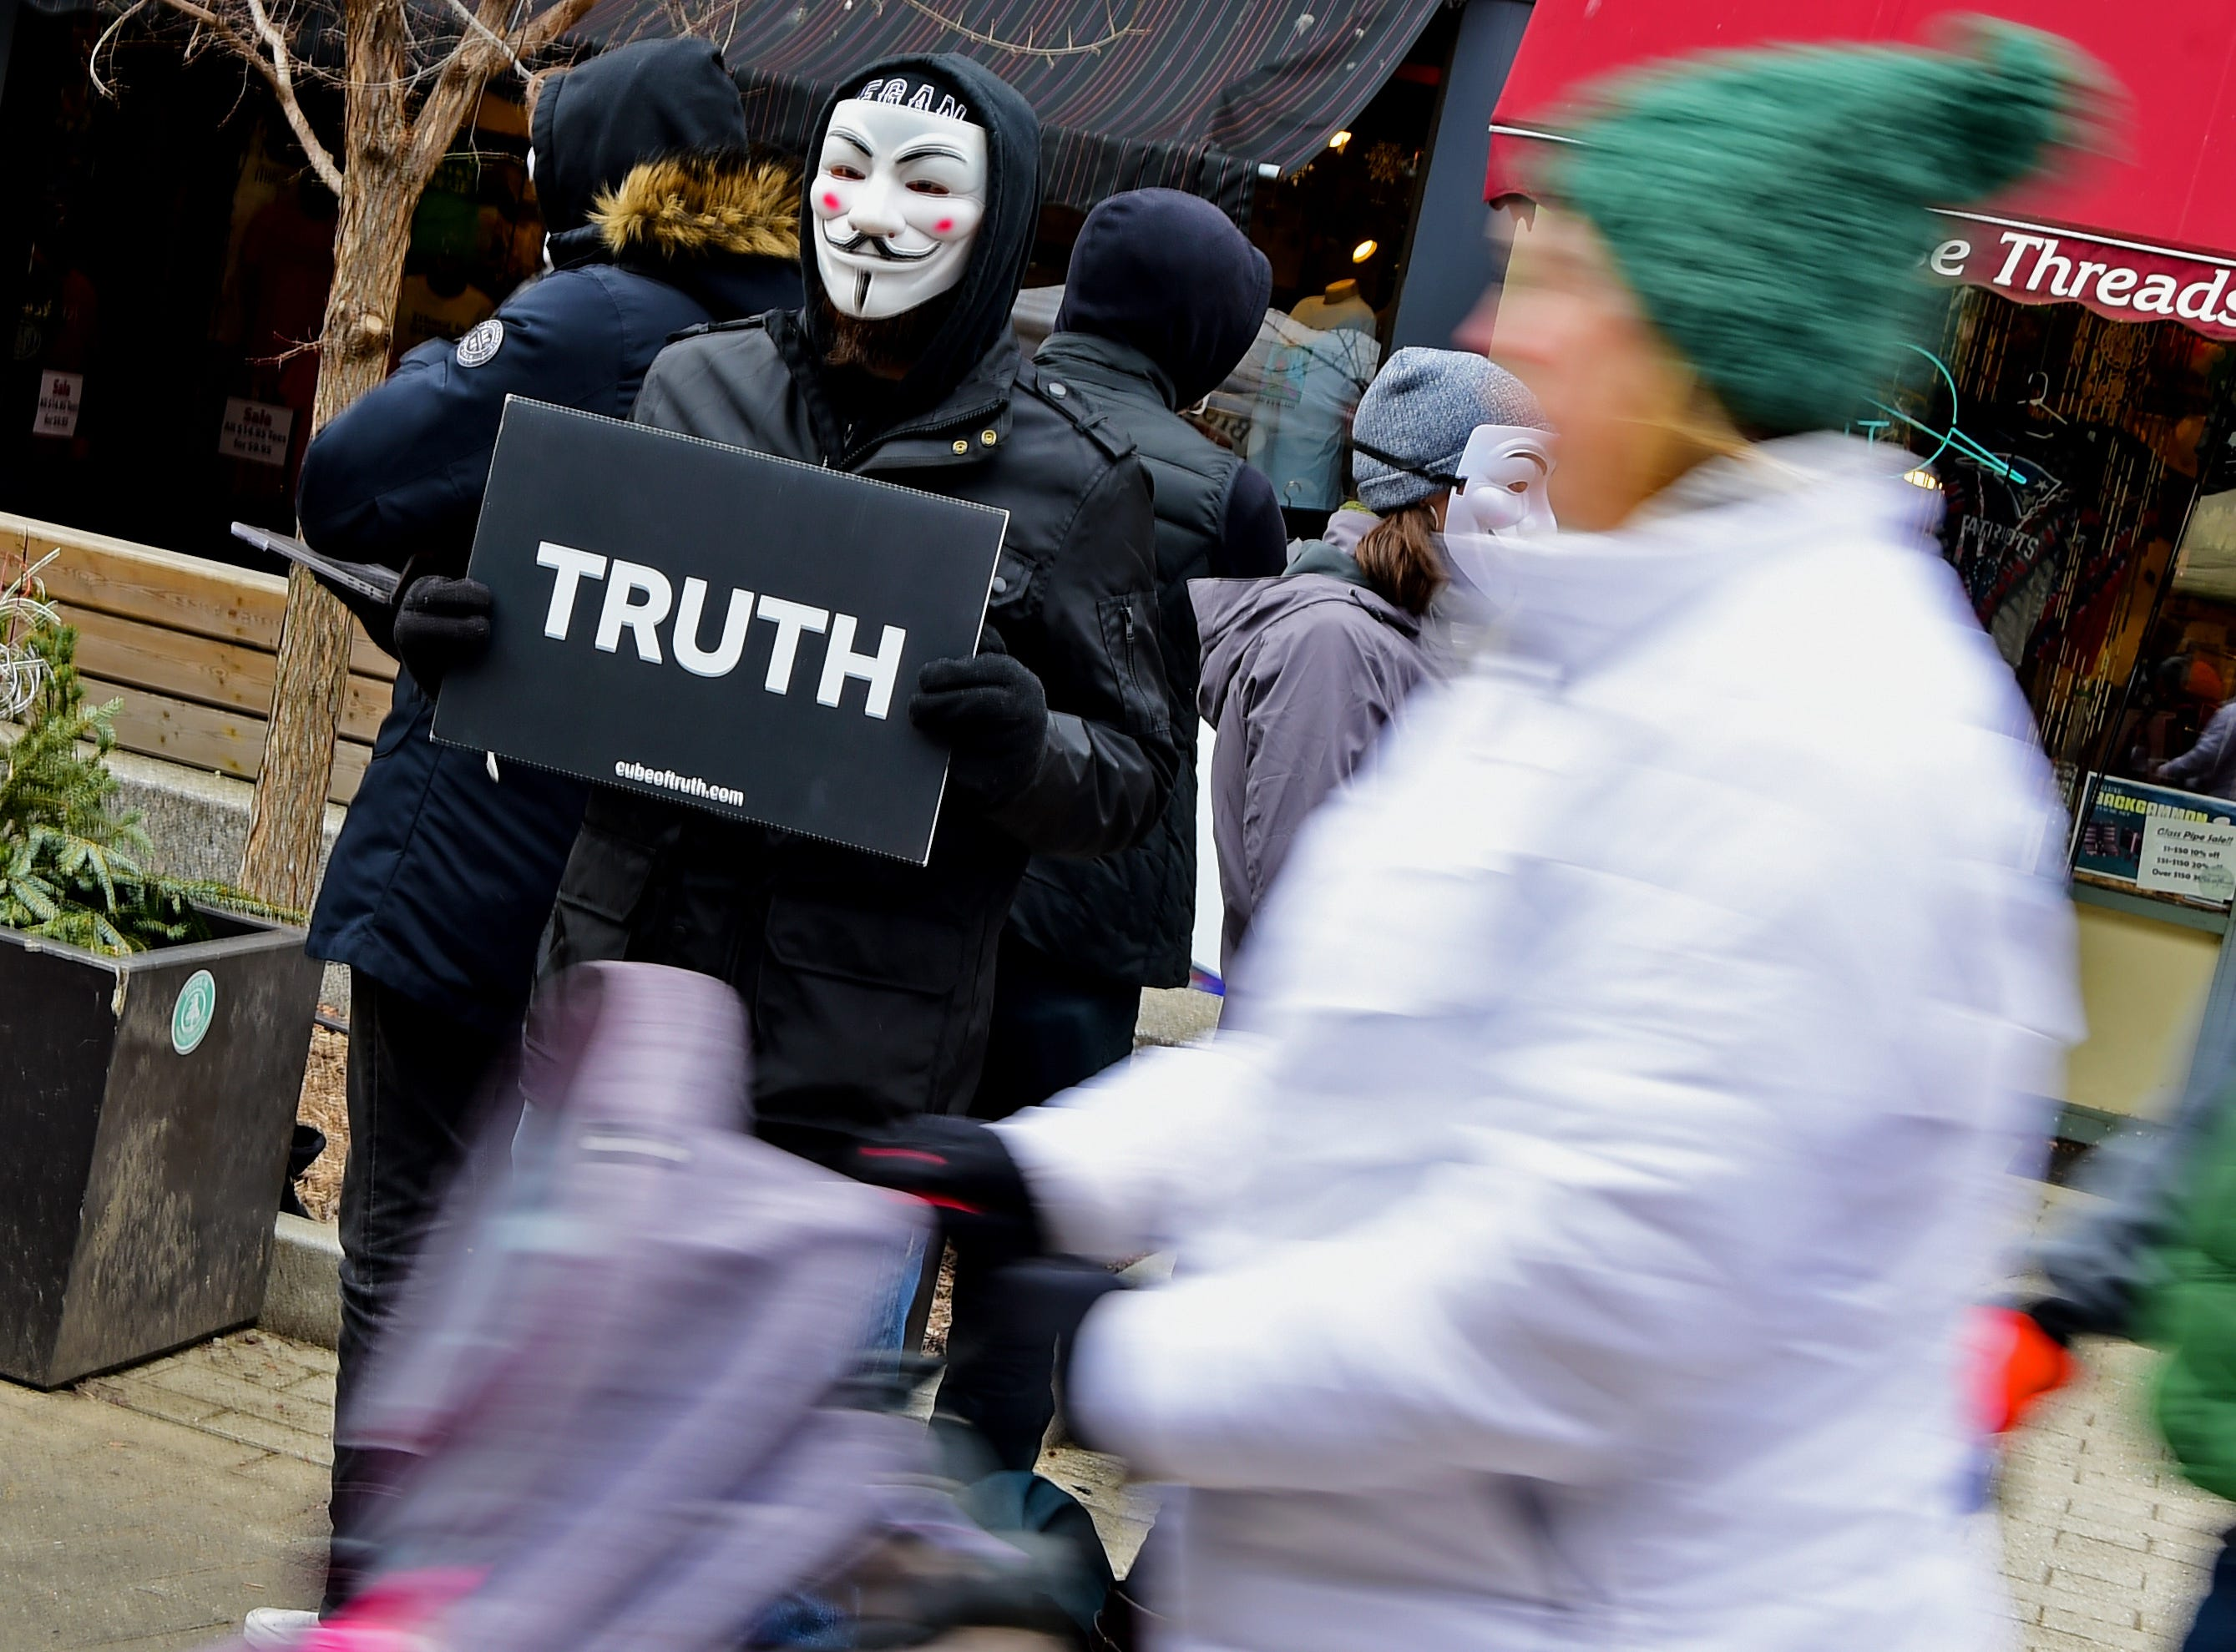 Protestors from Anonymous for the Voice, an animal rights group, during the Ithaca Chili Cook-off was on Saturday, February 8, 2019.